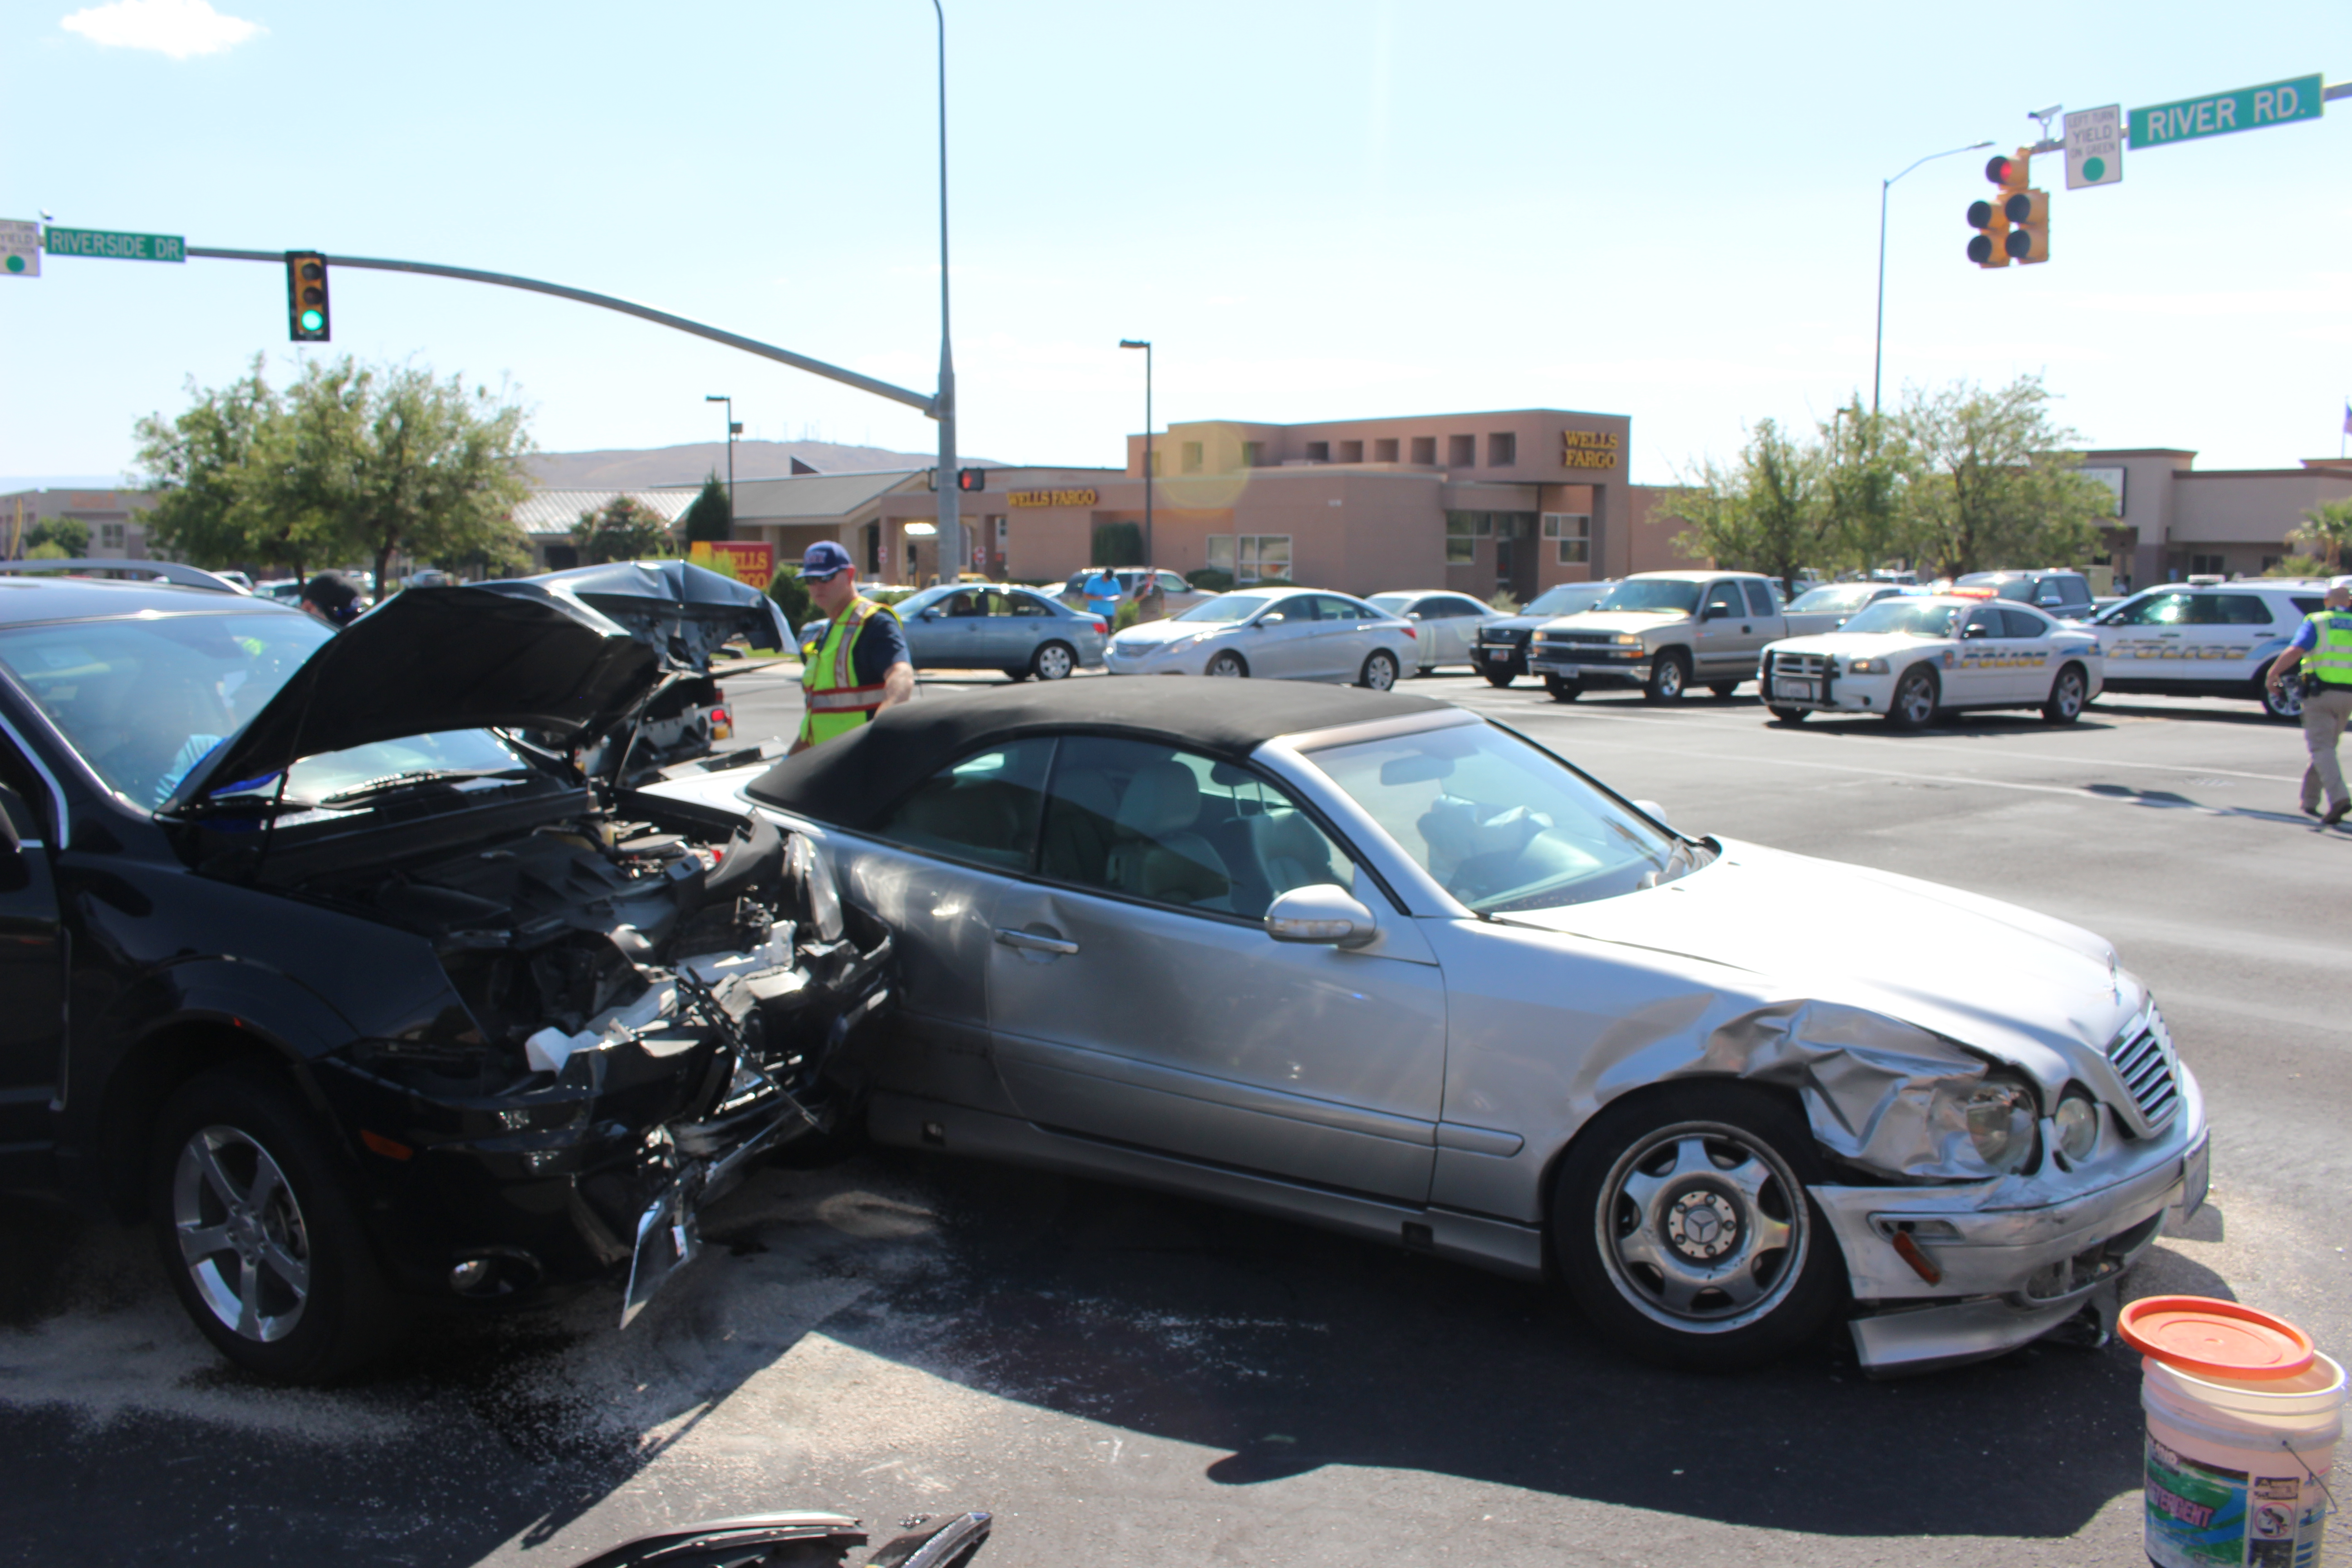 Two cars sit disabled in the intersection of Riverside Drive and River Road Monday after a crash that caused both drivers to be taken to the hospital. St. George, Utah, Sept. 12, 2016 | Photo by Ric Wayman, St. George News